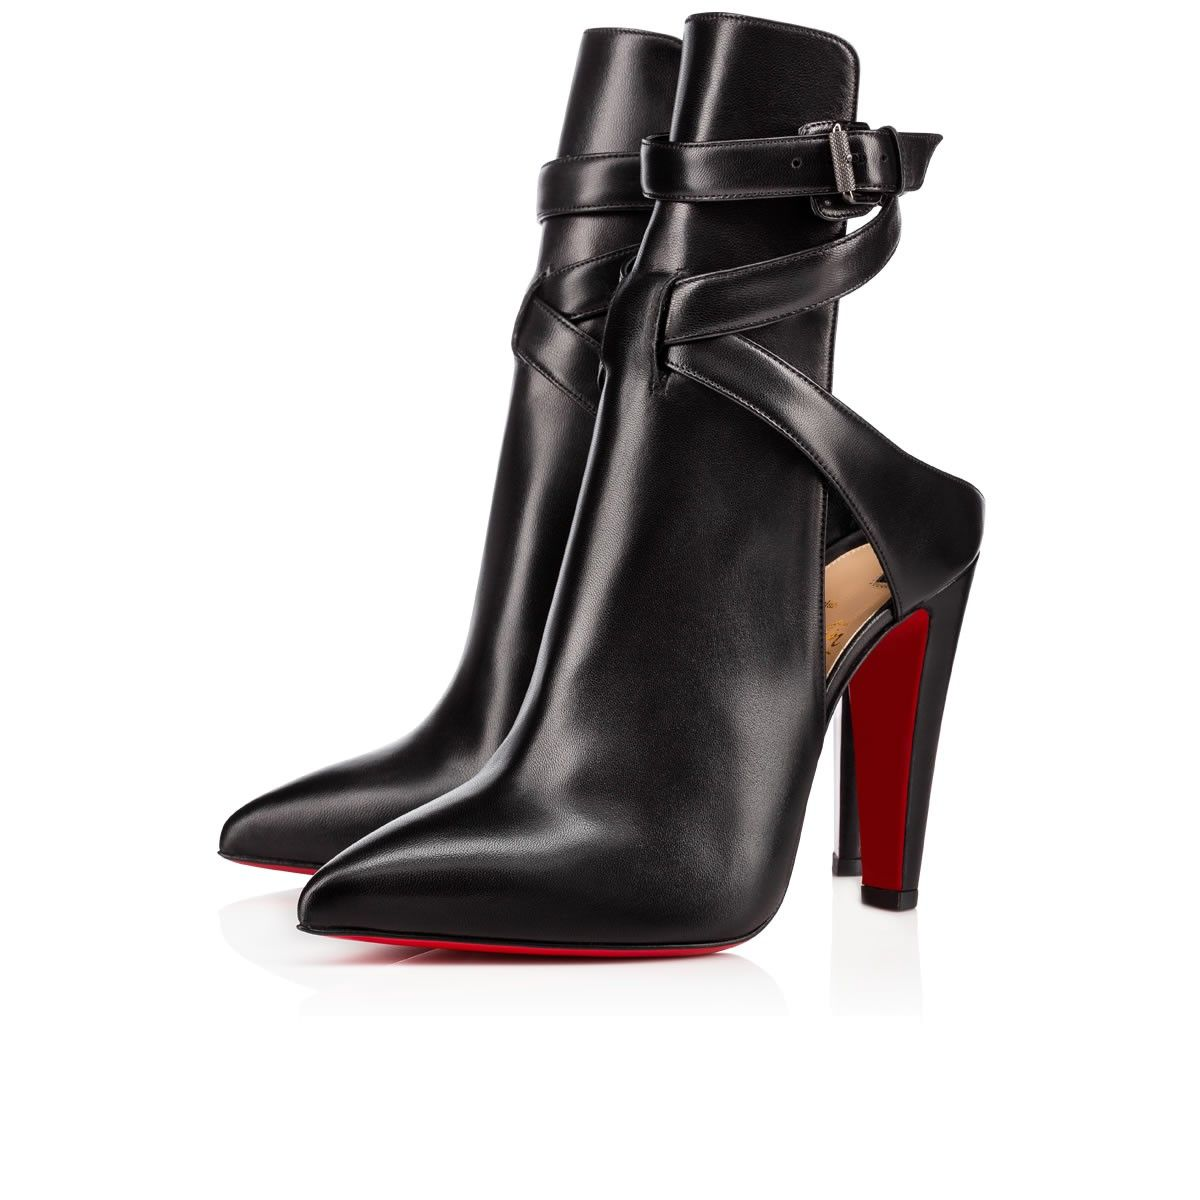 Christian Louboutin Nappa 100 Shiny Leather Booties